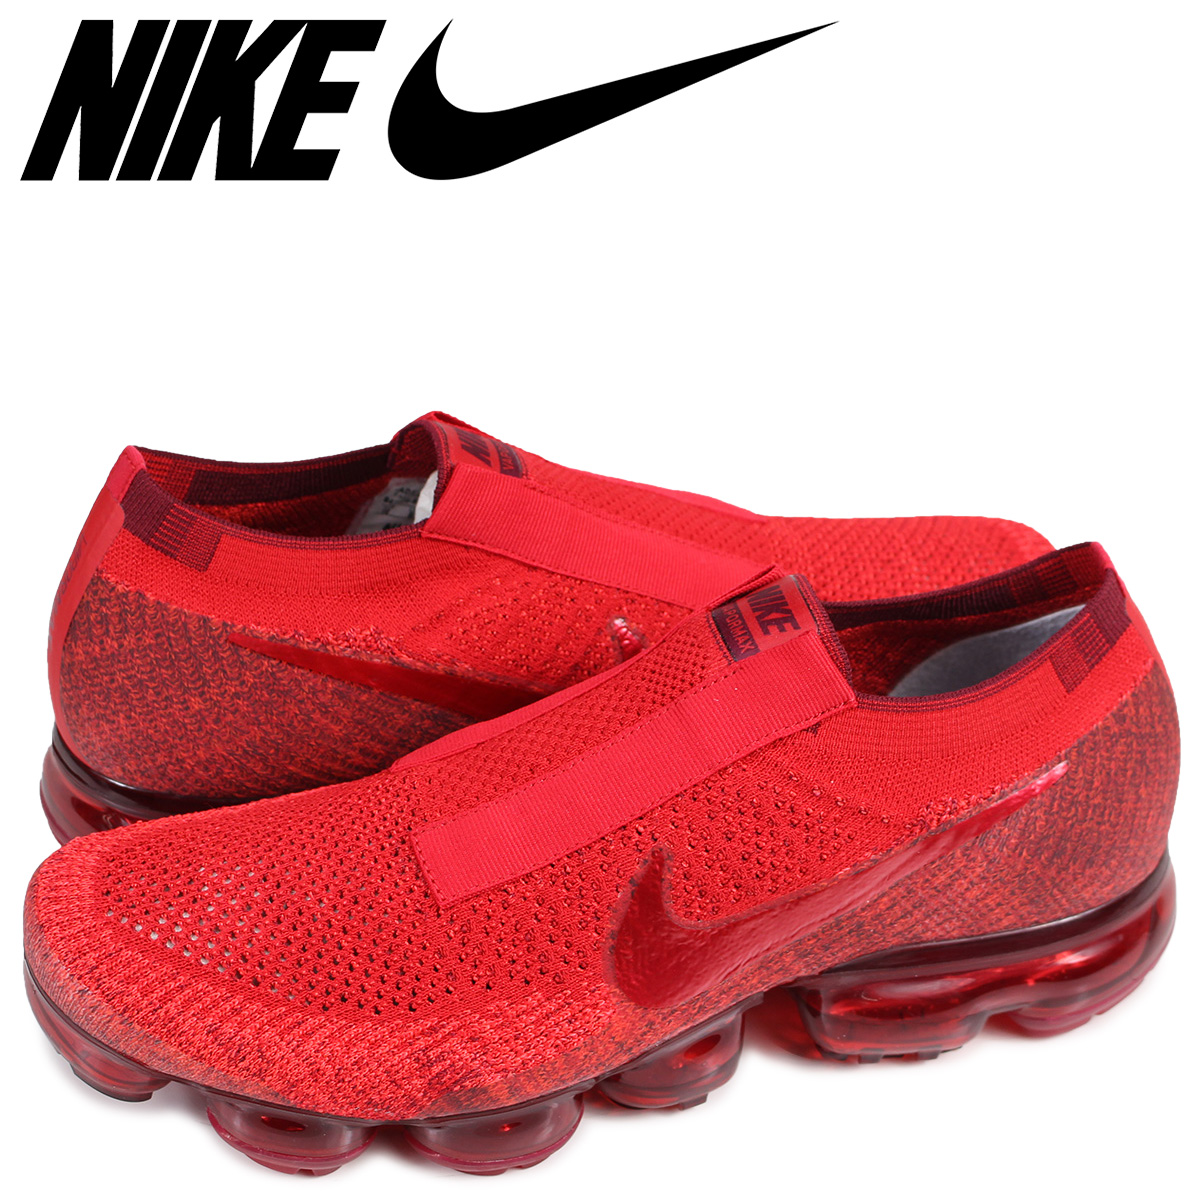 best service 91209 14d34 NIKE AIR VAPORMAX FLYKNIT ID JEWEL TONES Nike air vapor max fried food knit  sneakers men 941,834-971 red